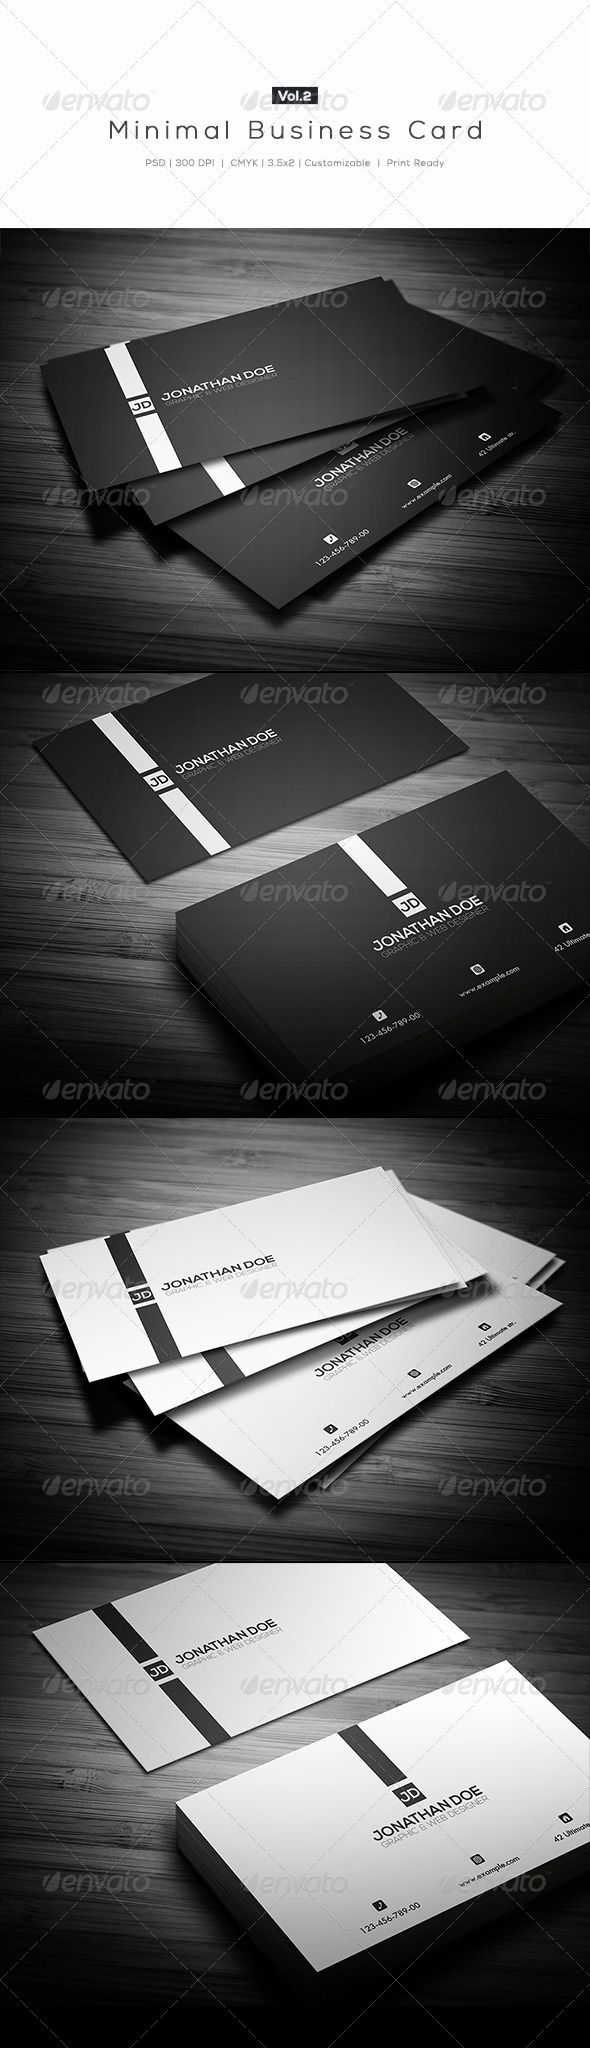 77 best Business Cards images on Pinterest | Business cards, Cards ...